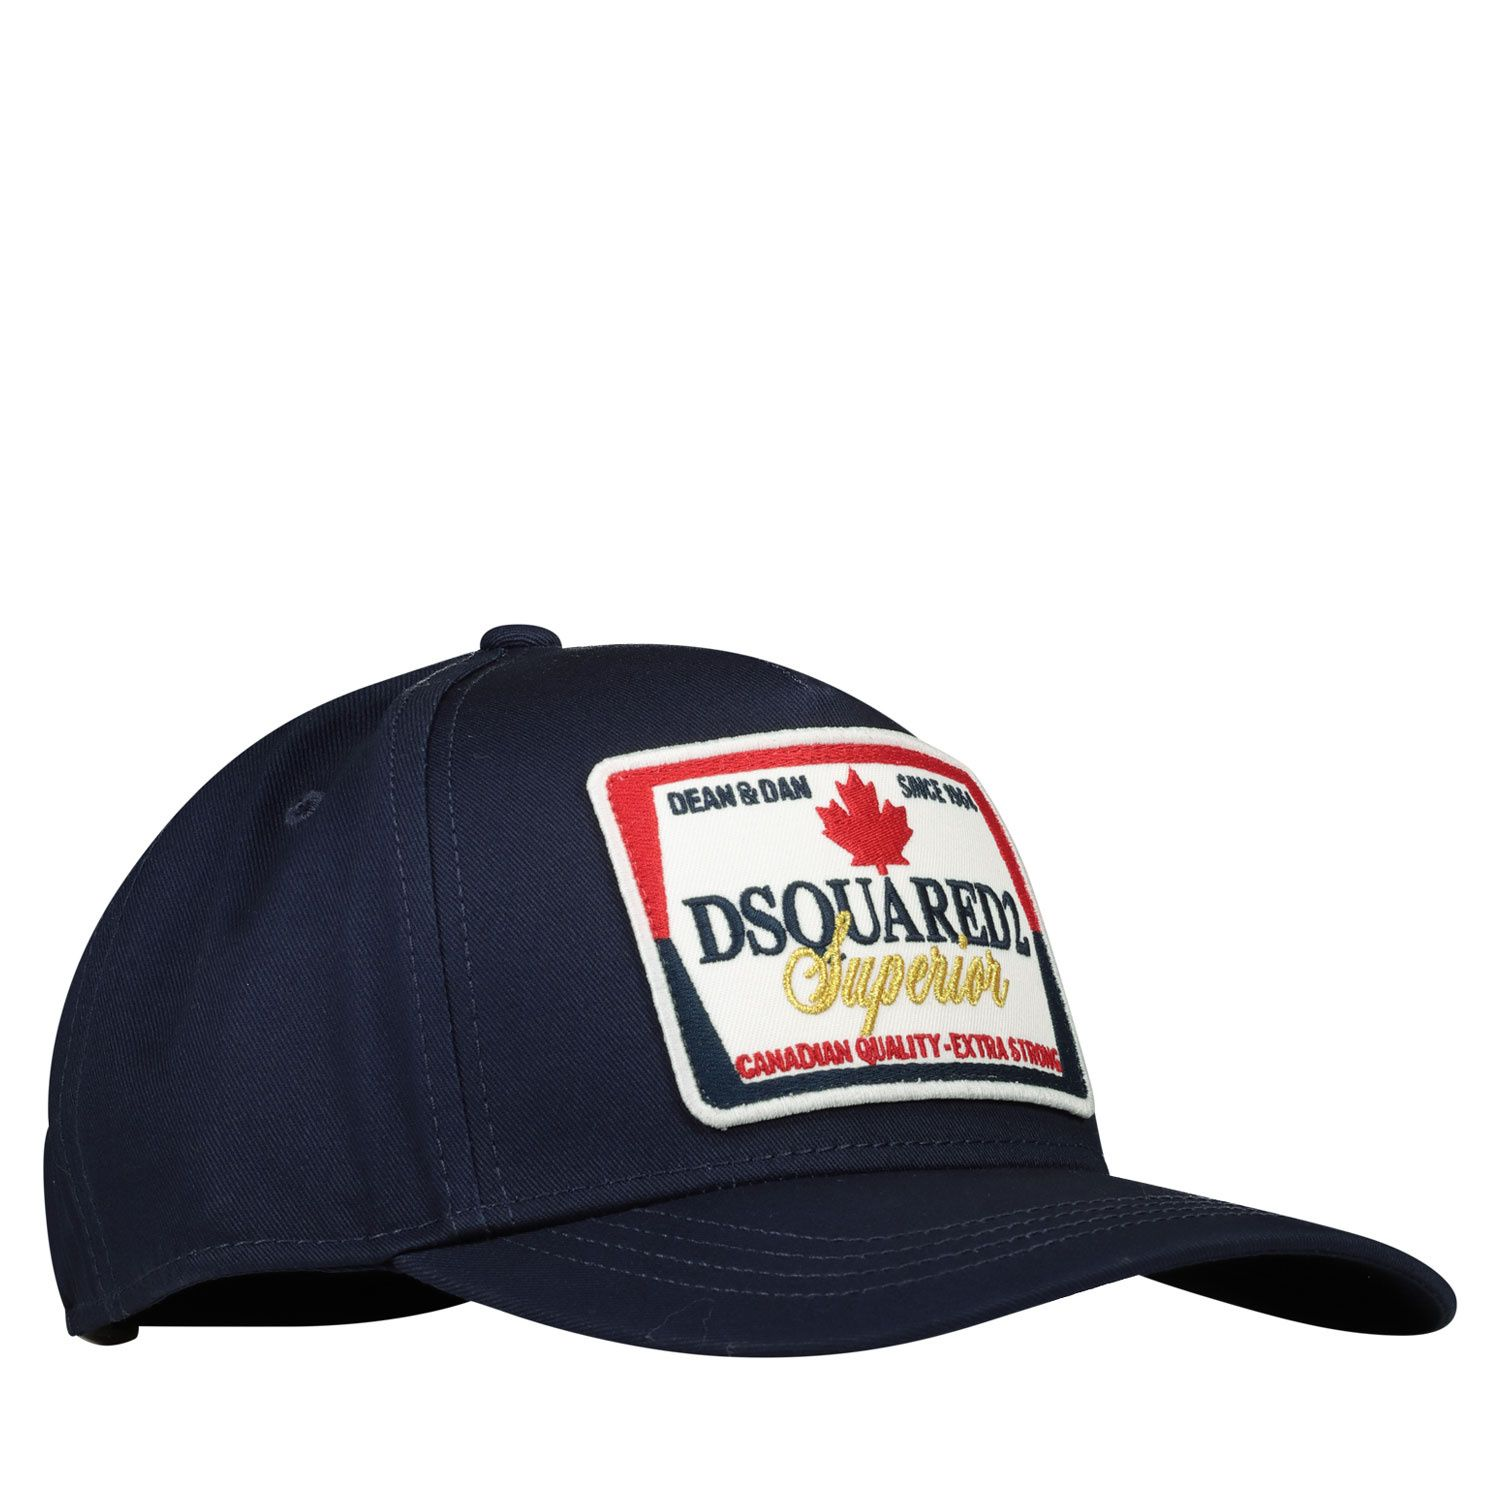 Picture of Dsquared2 DQ04AC kids cap navy